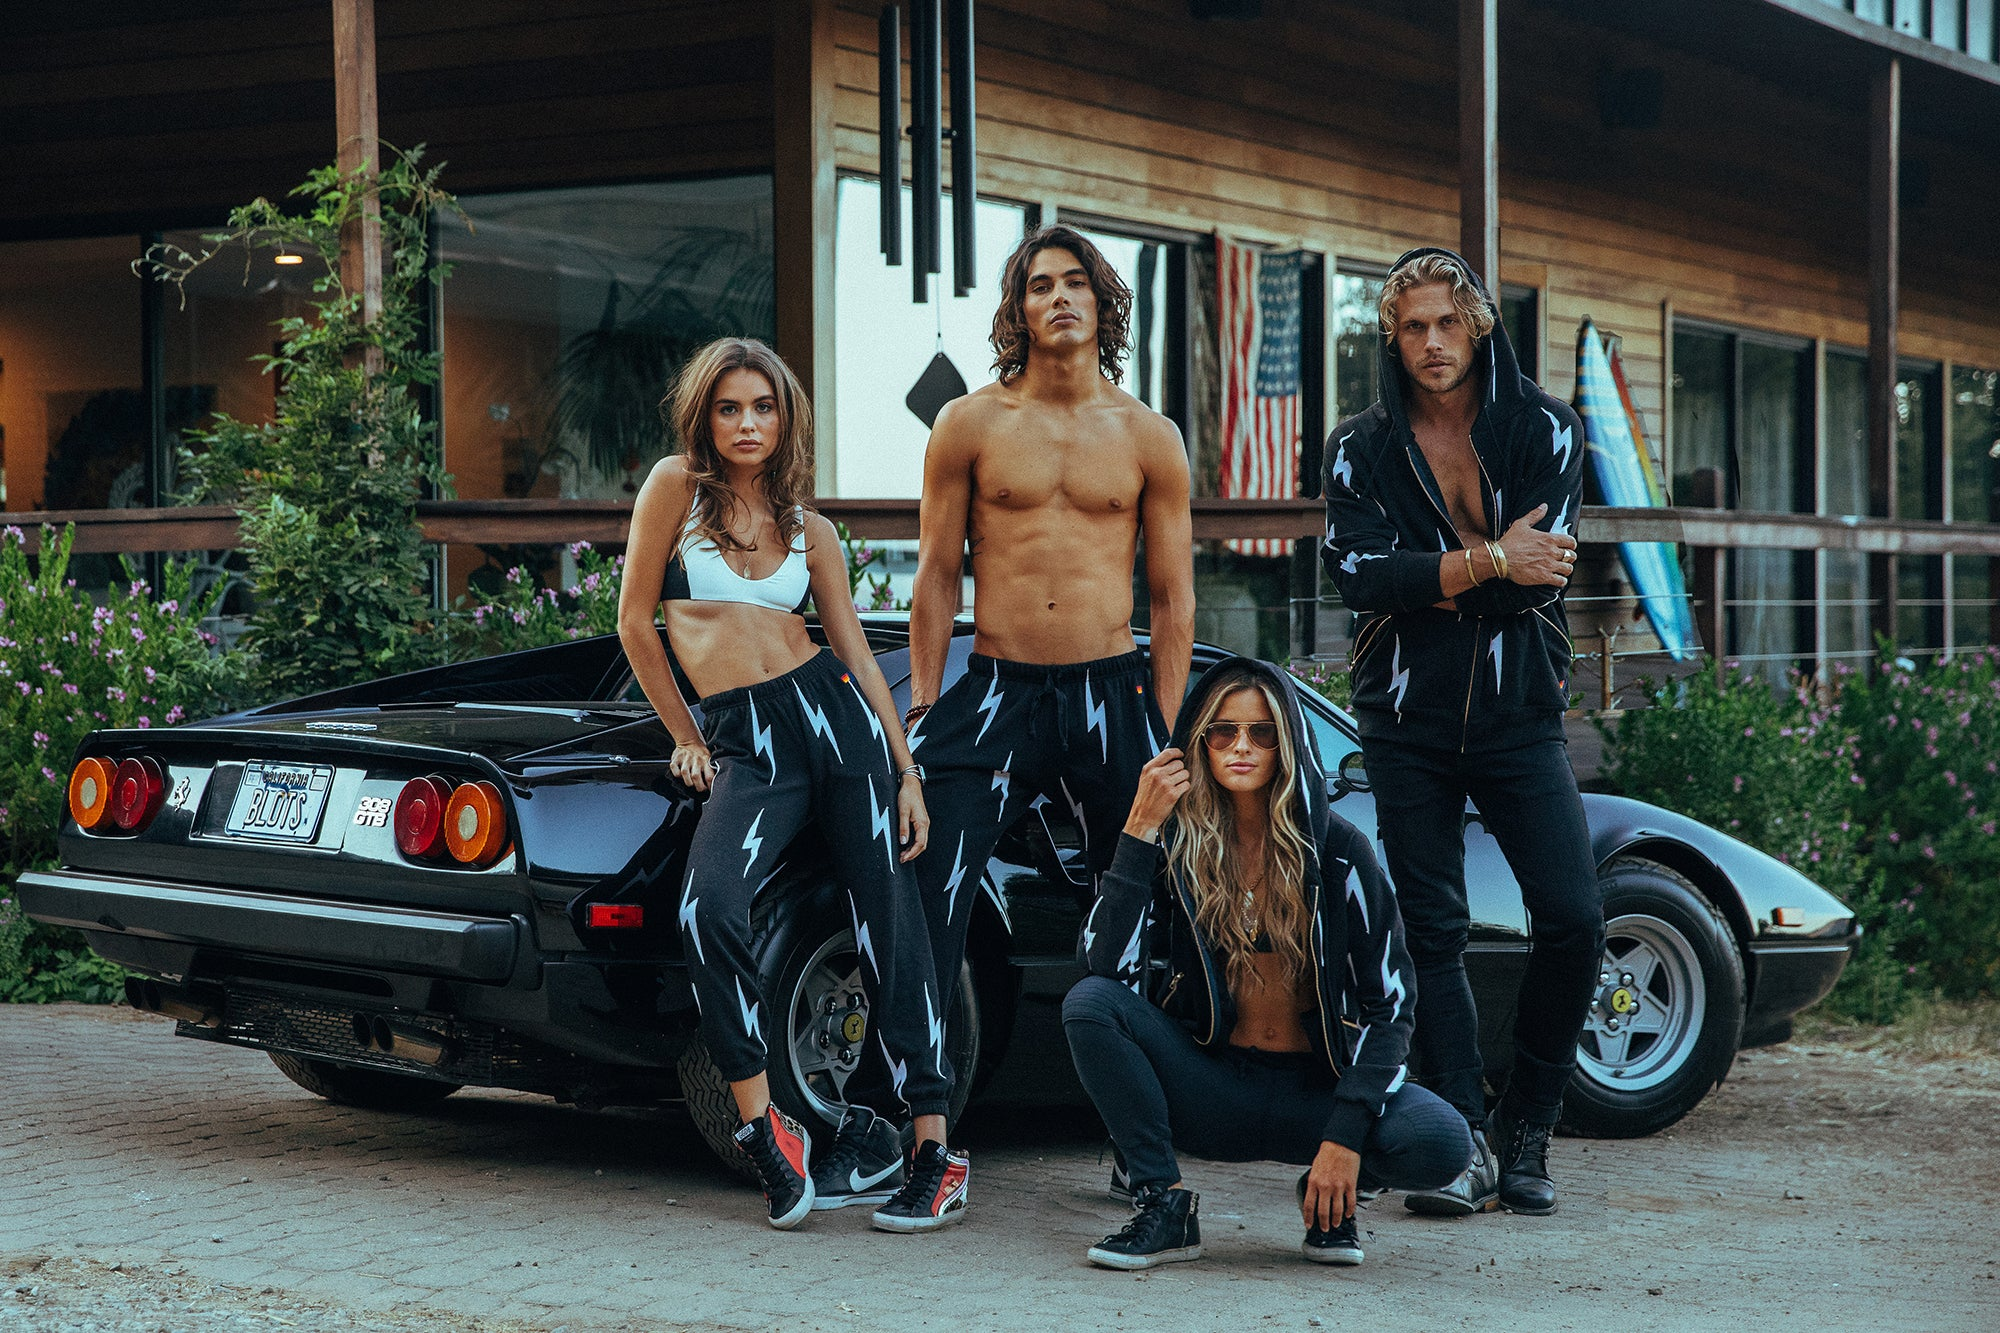 Models posing in-front of a car